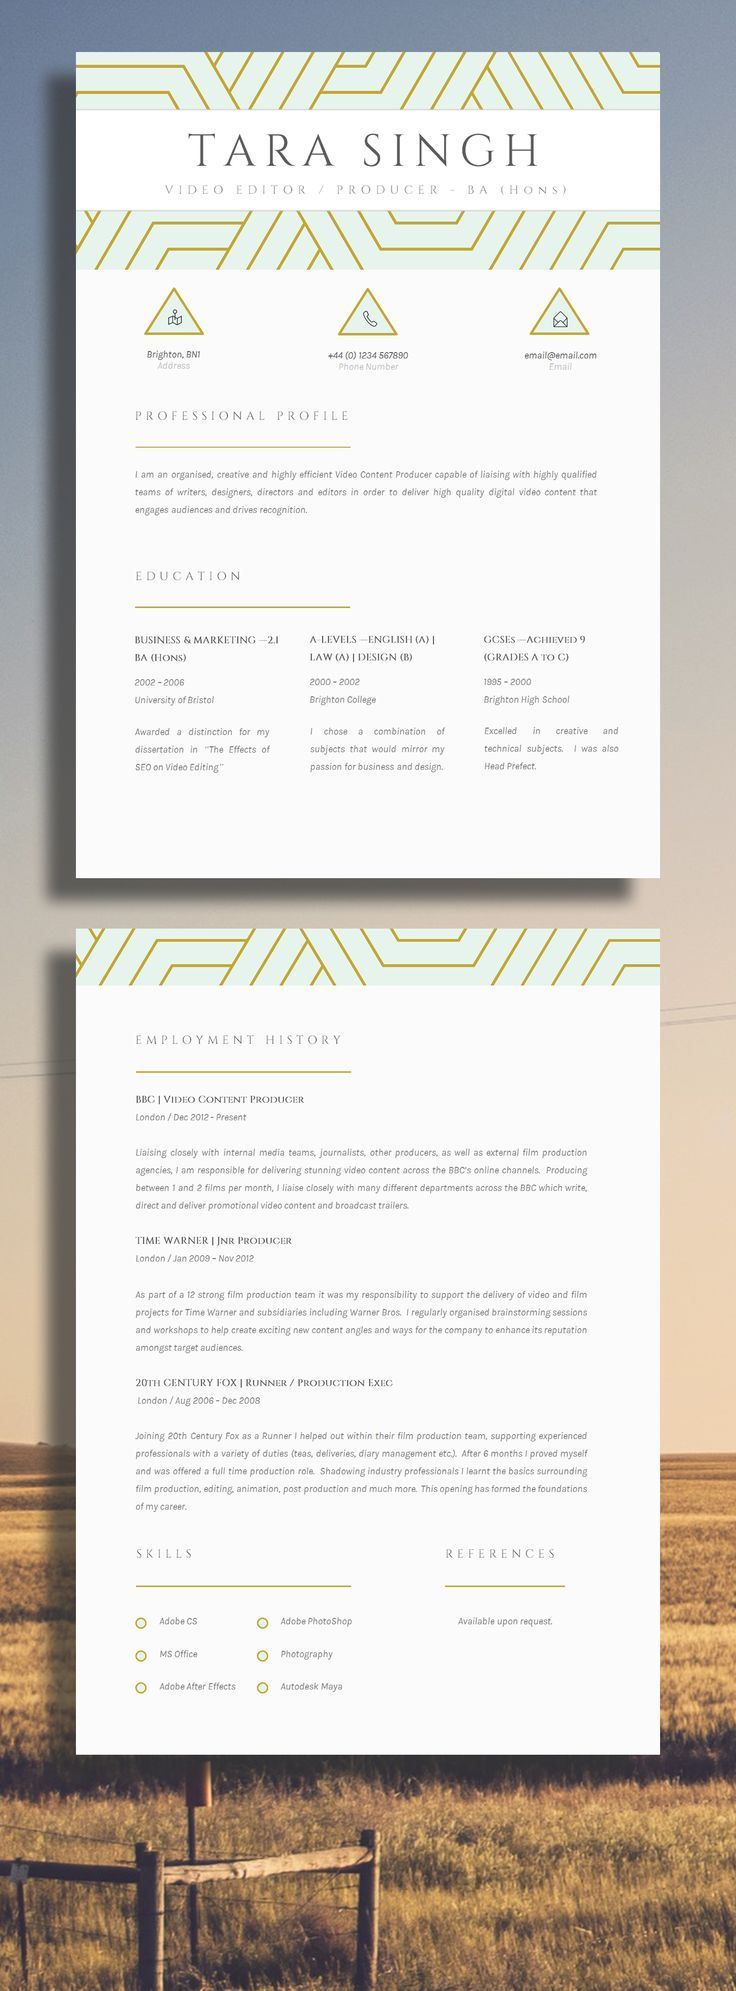 An elegant and creative CV design gives a professional approach to ...